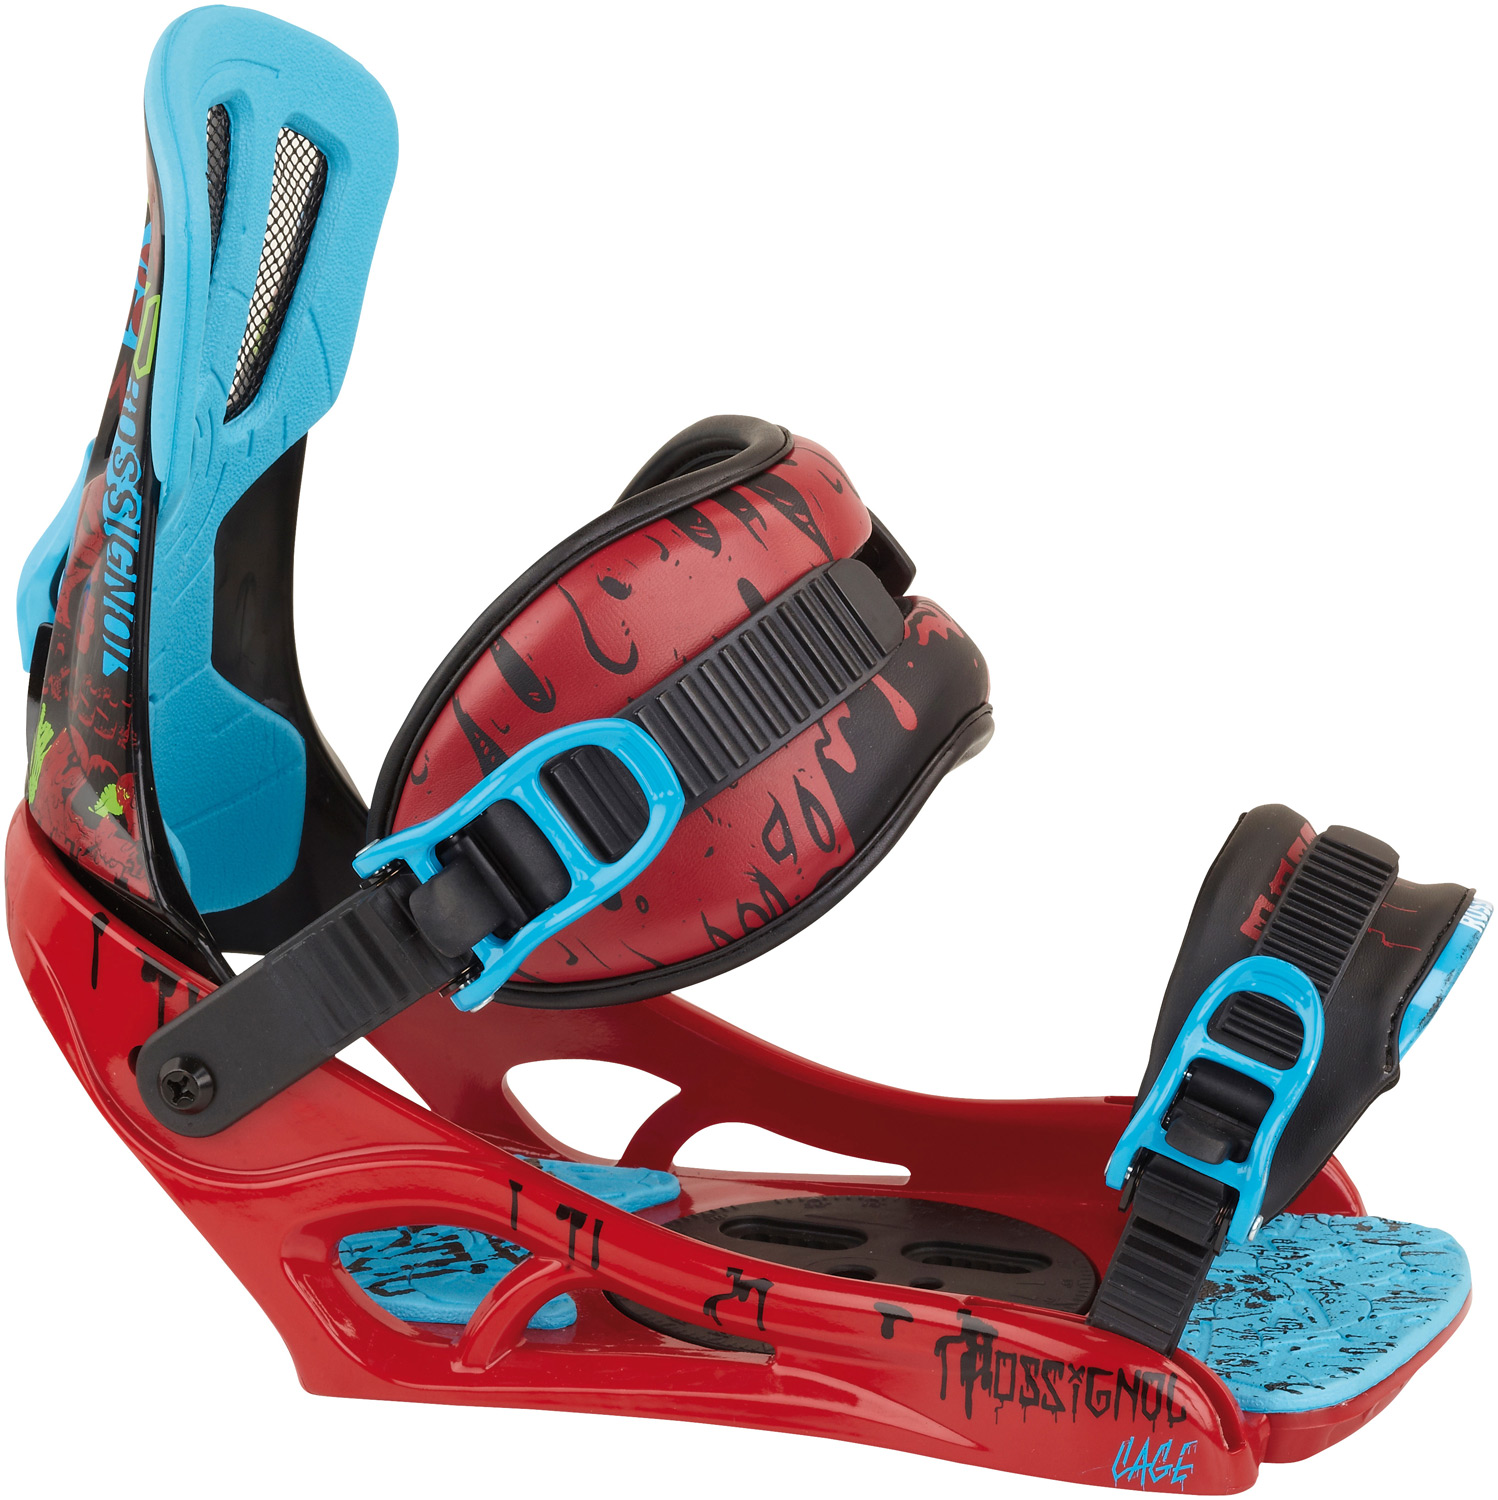 Snowboard New from the ground up, the Rossignol Cage V1 Snowboard Binding sets the new standard for performance and price. With features like Rossignol's new CPU Baseplate and Mainframe Highback, new cored out Pounder Straps and tool free toe ramps with EVA Puffy Pads, the Cage will make you wonder why you'd ever need more from a binding.Key Features of the Rossignol Cage Snowboard Bindings: CPU Baseplate Mainframe Highback Pounder Straps Puffy Pad Footbed Alumalight Buckle Levers - $90.95